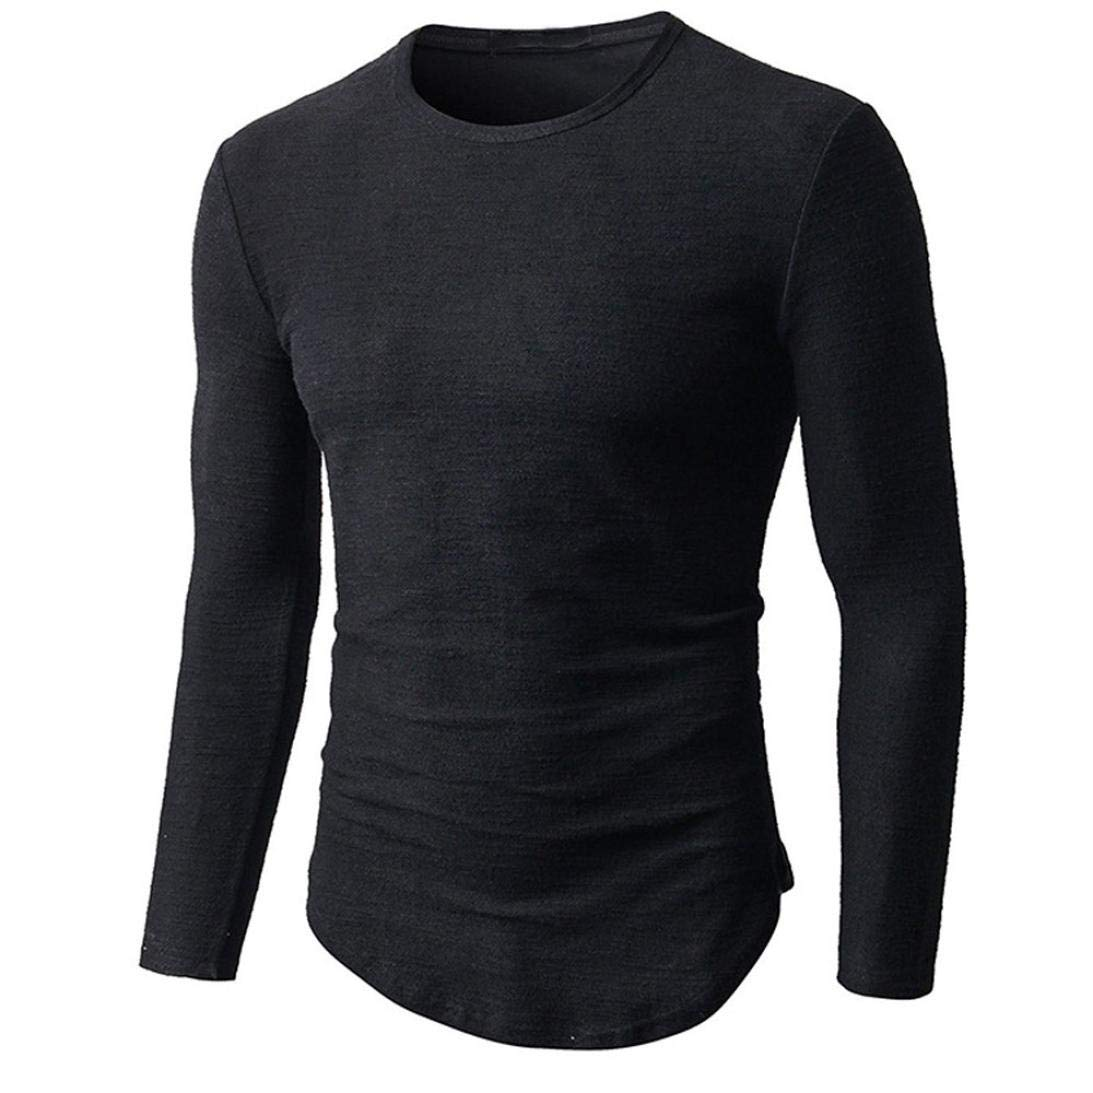 5b220d7b654 Top 10 wholesale Best Cheap Clothing Sites - Chinabrands.com